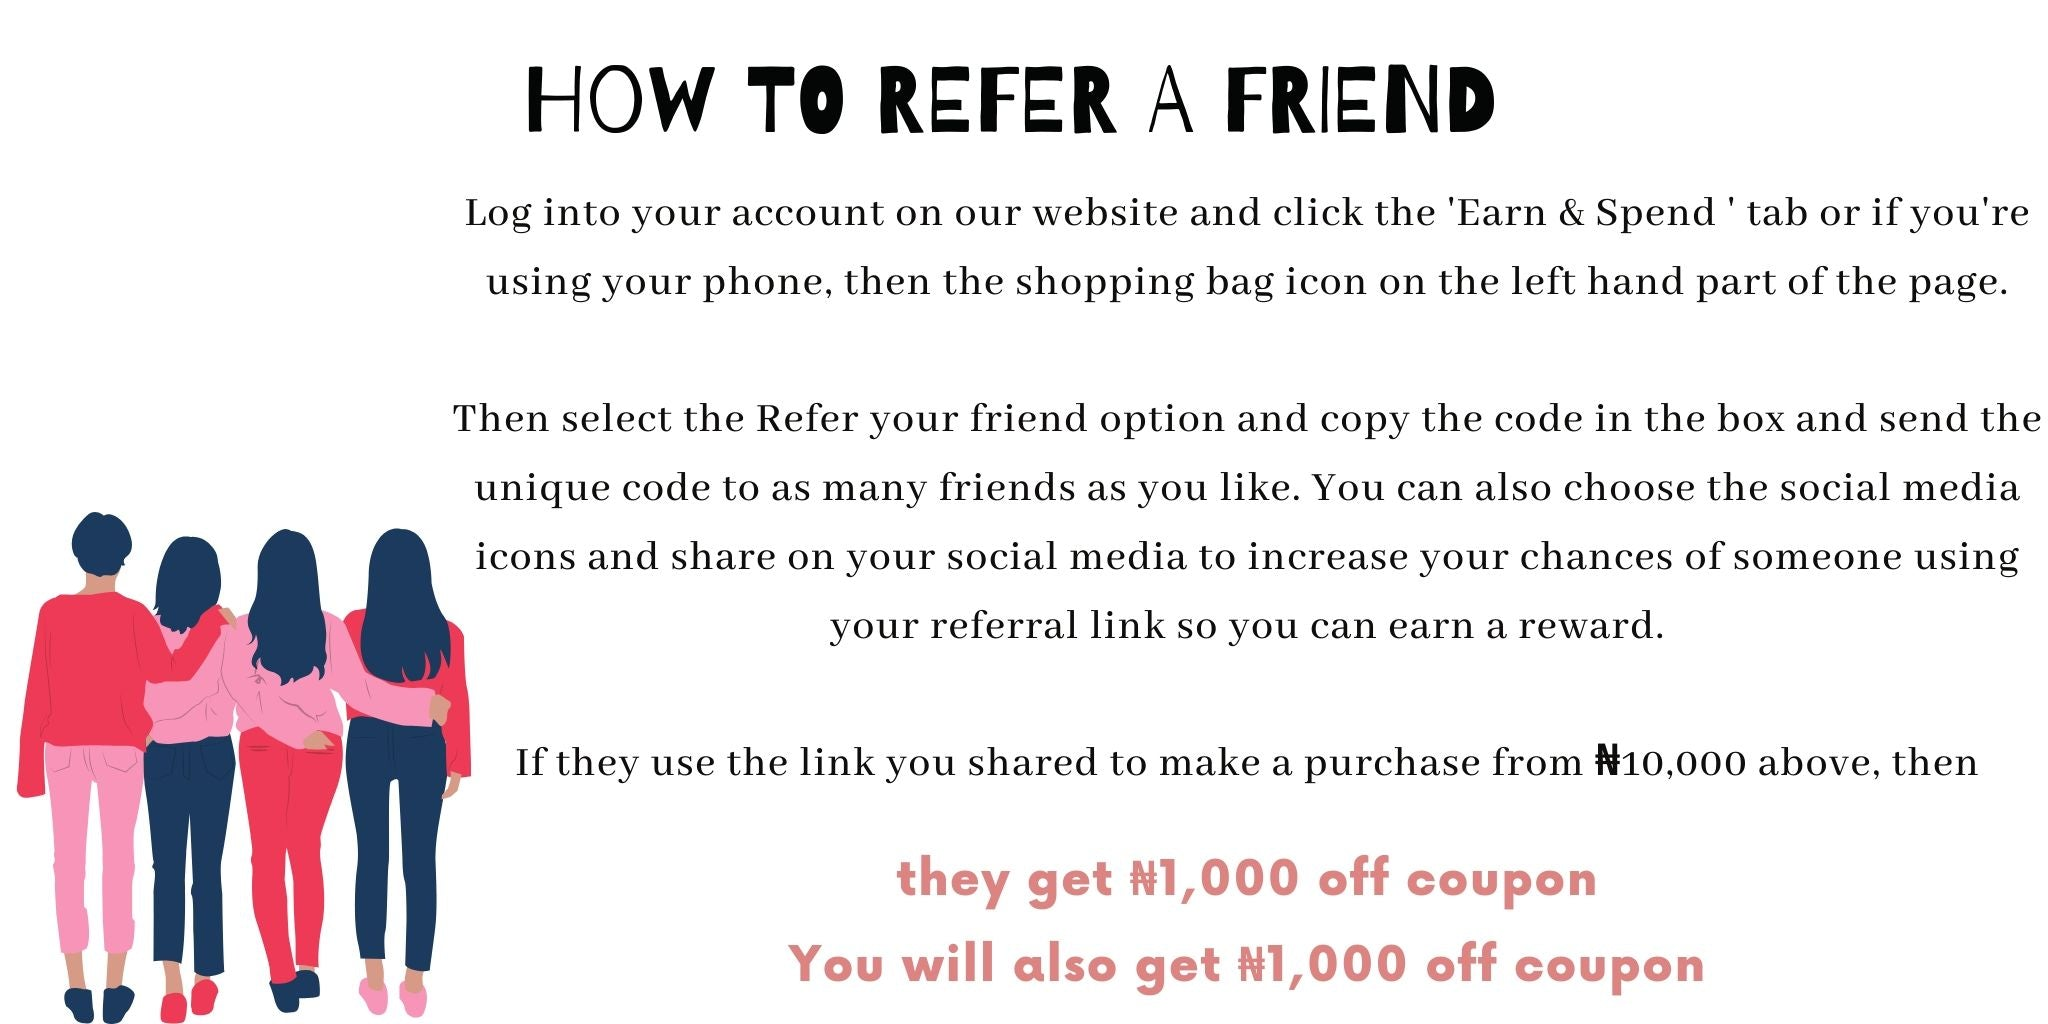 How to refer a friend for hanpeau points